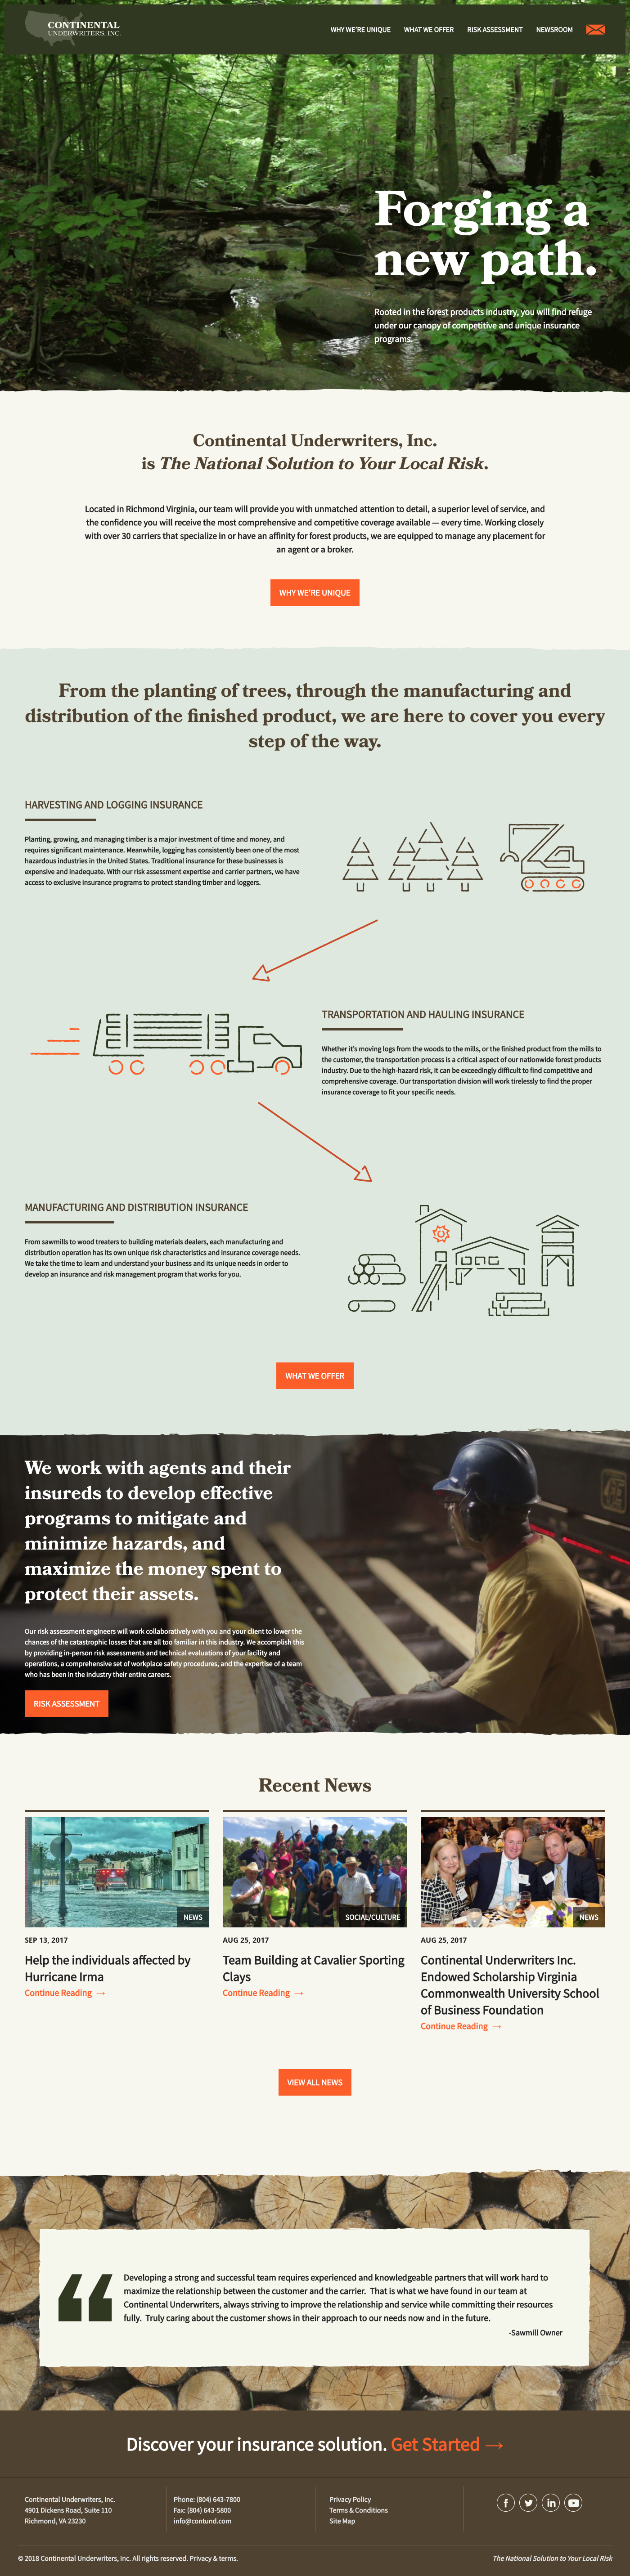 Website Design & Development for Continental Underwriters